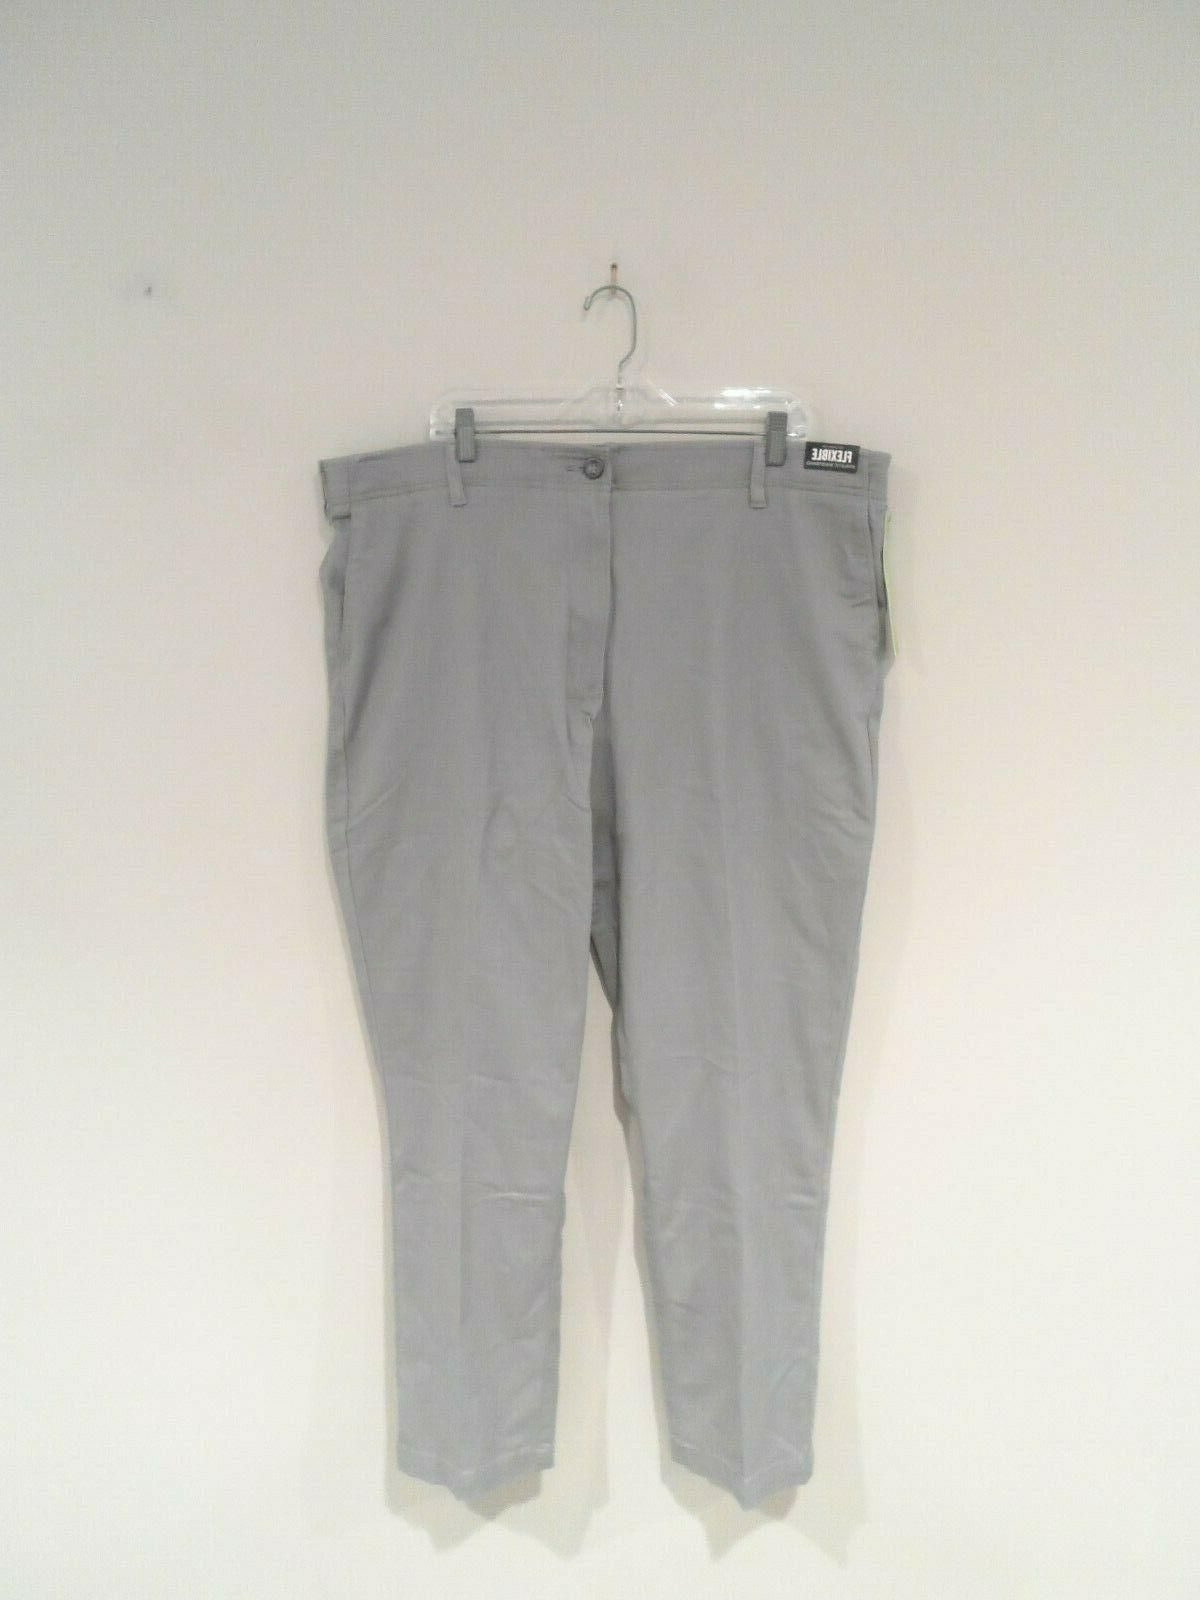 Comfort Pants 42x32 Relaxed Fit 4276506